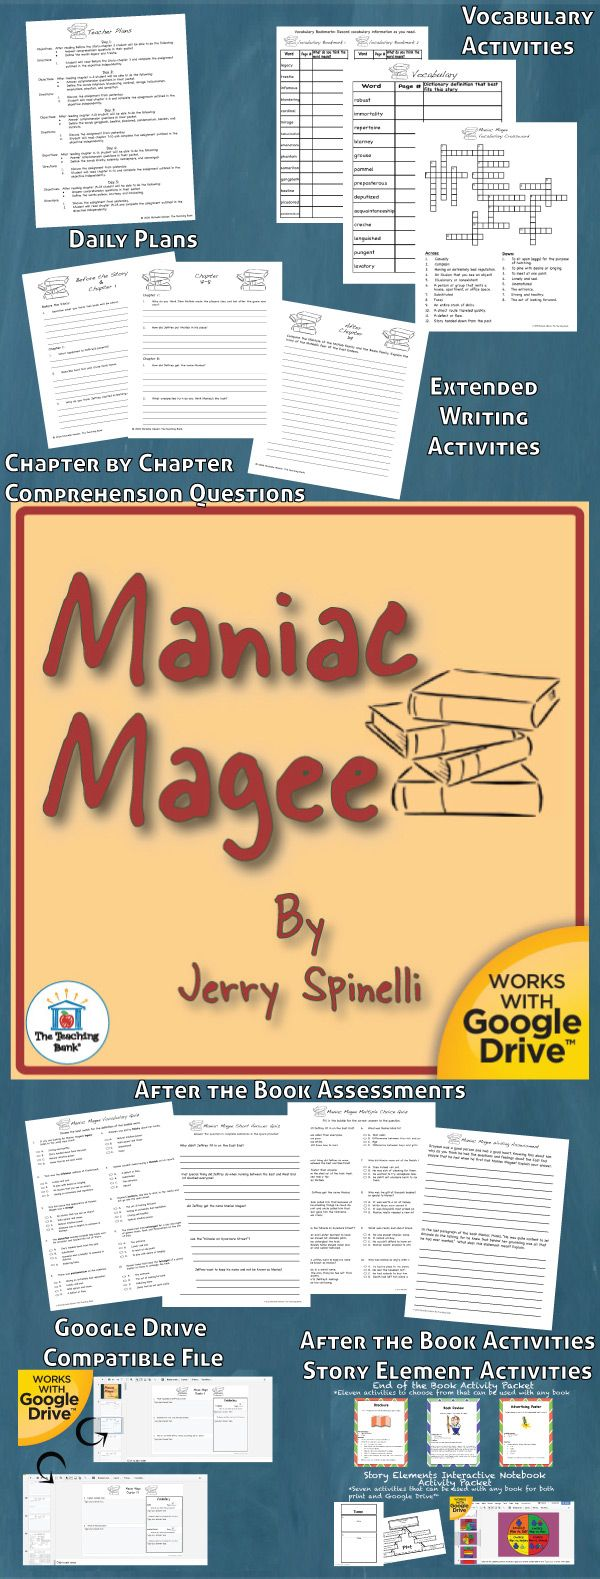 Maniac Magee Novel Study is a Common Core Standard aligned book unit to be used with Maniac Magee by Jerry Spinelli. This download contains both a printable format as well as a Google Drive™ compatible format.